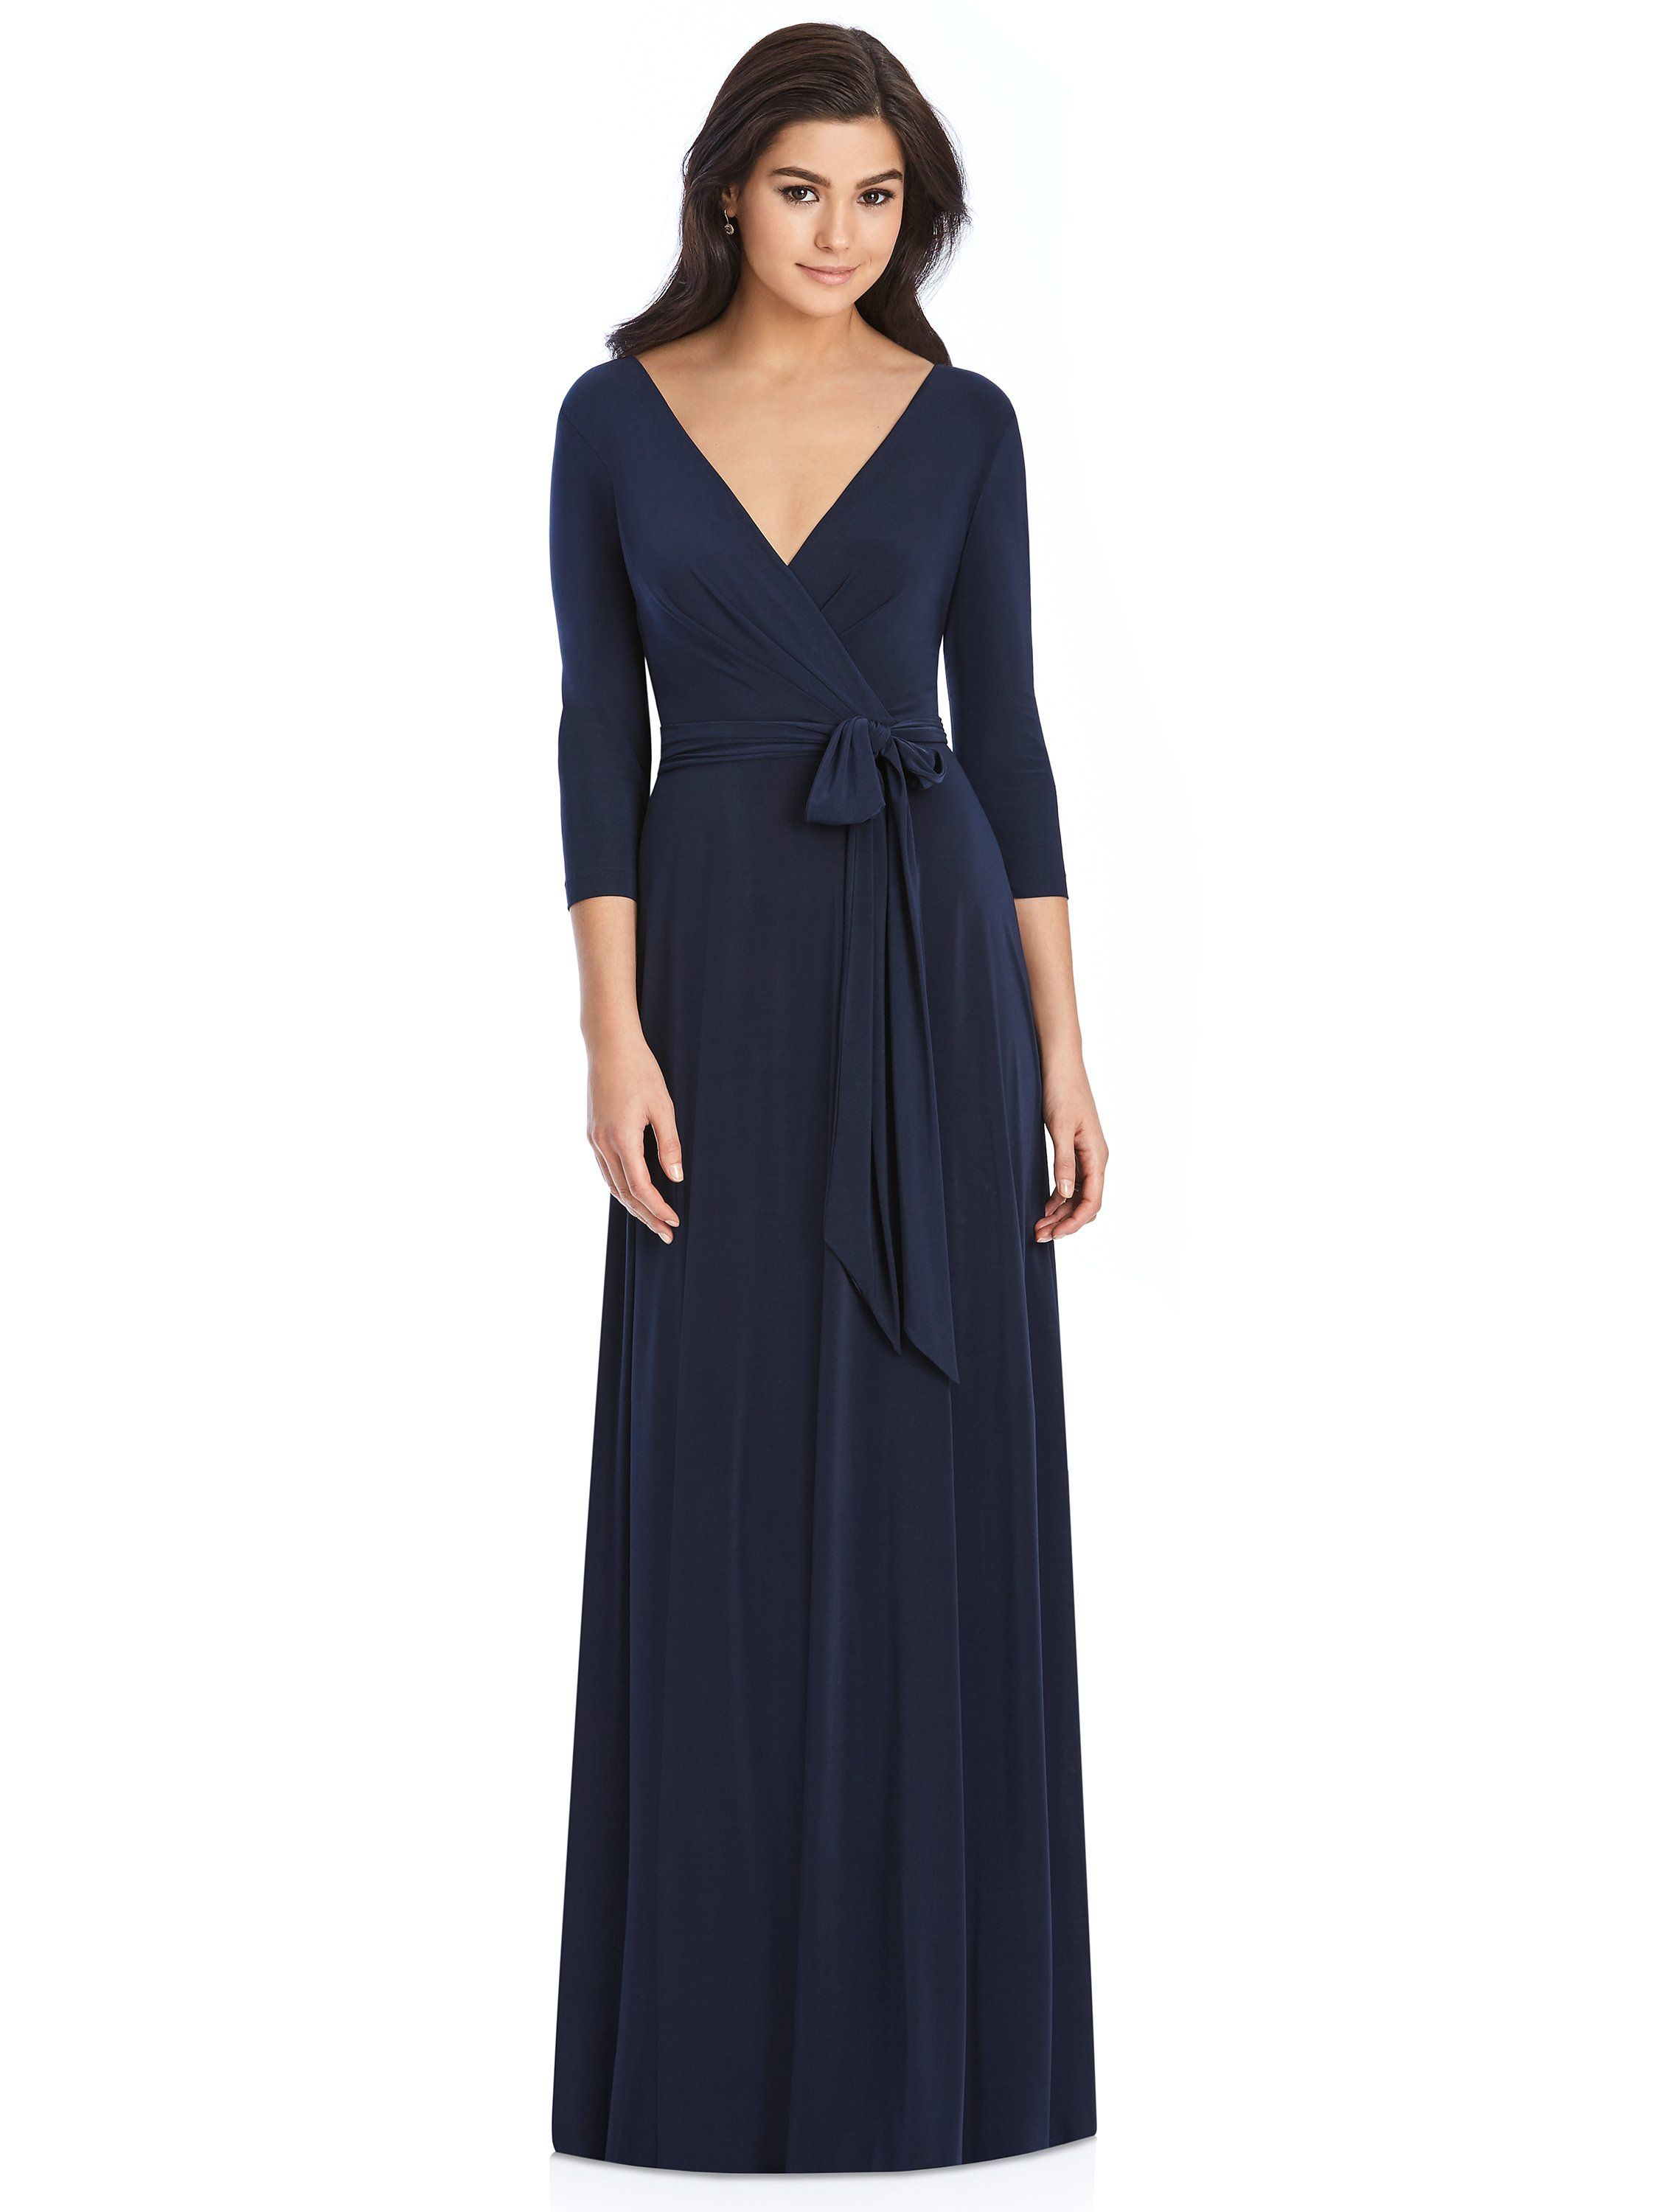 7e04d225c3e Elegant Jersey Formal Dress with Sleeves Style 3027